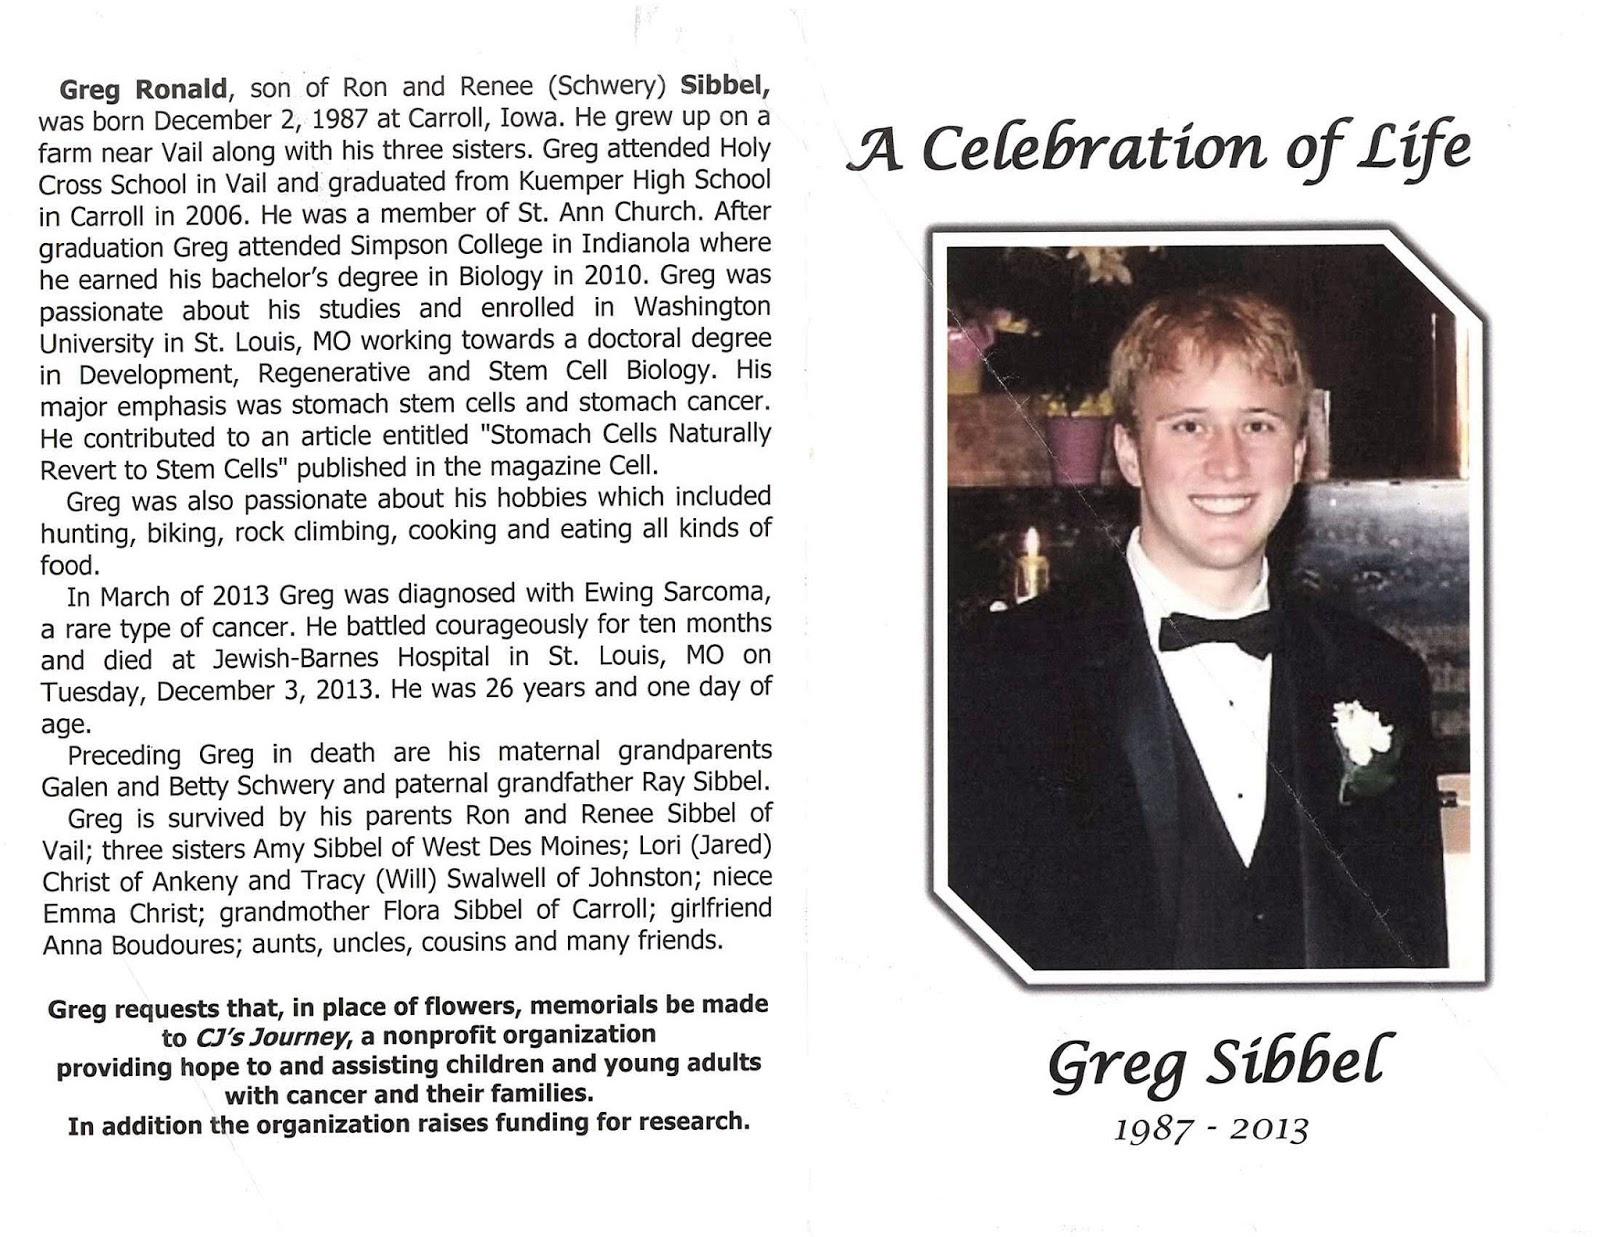 Model Organism: Greg Sibbel: Obituaries